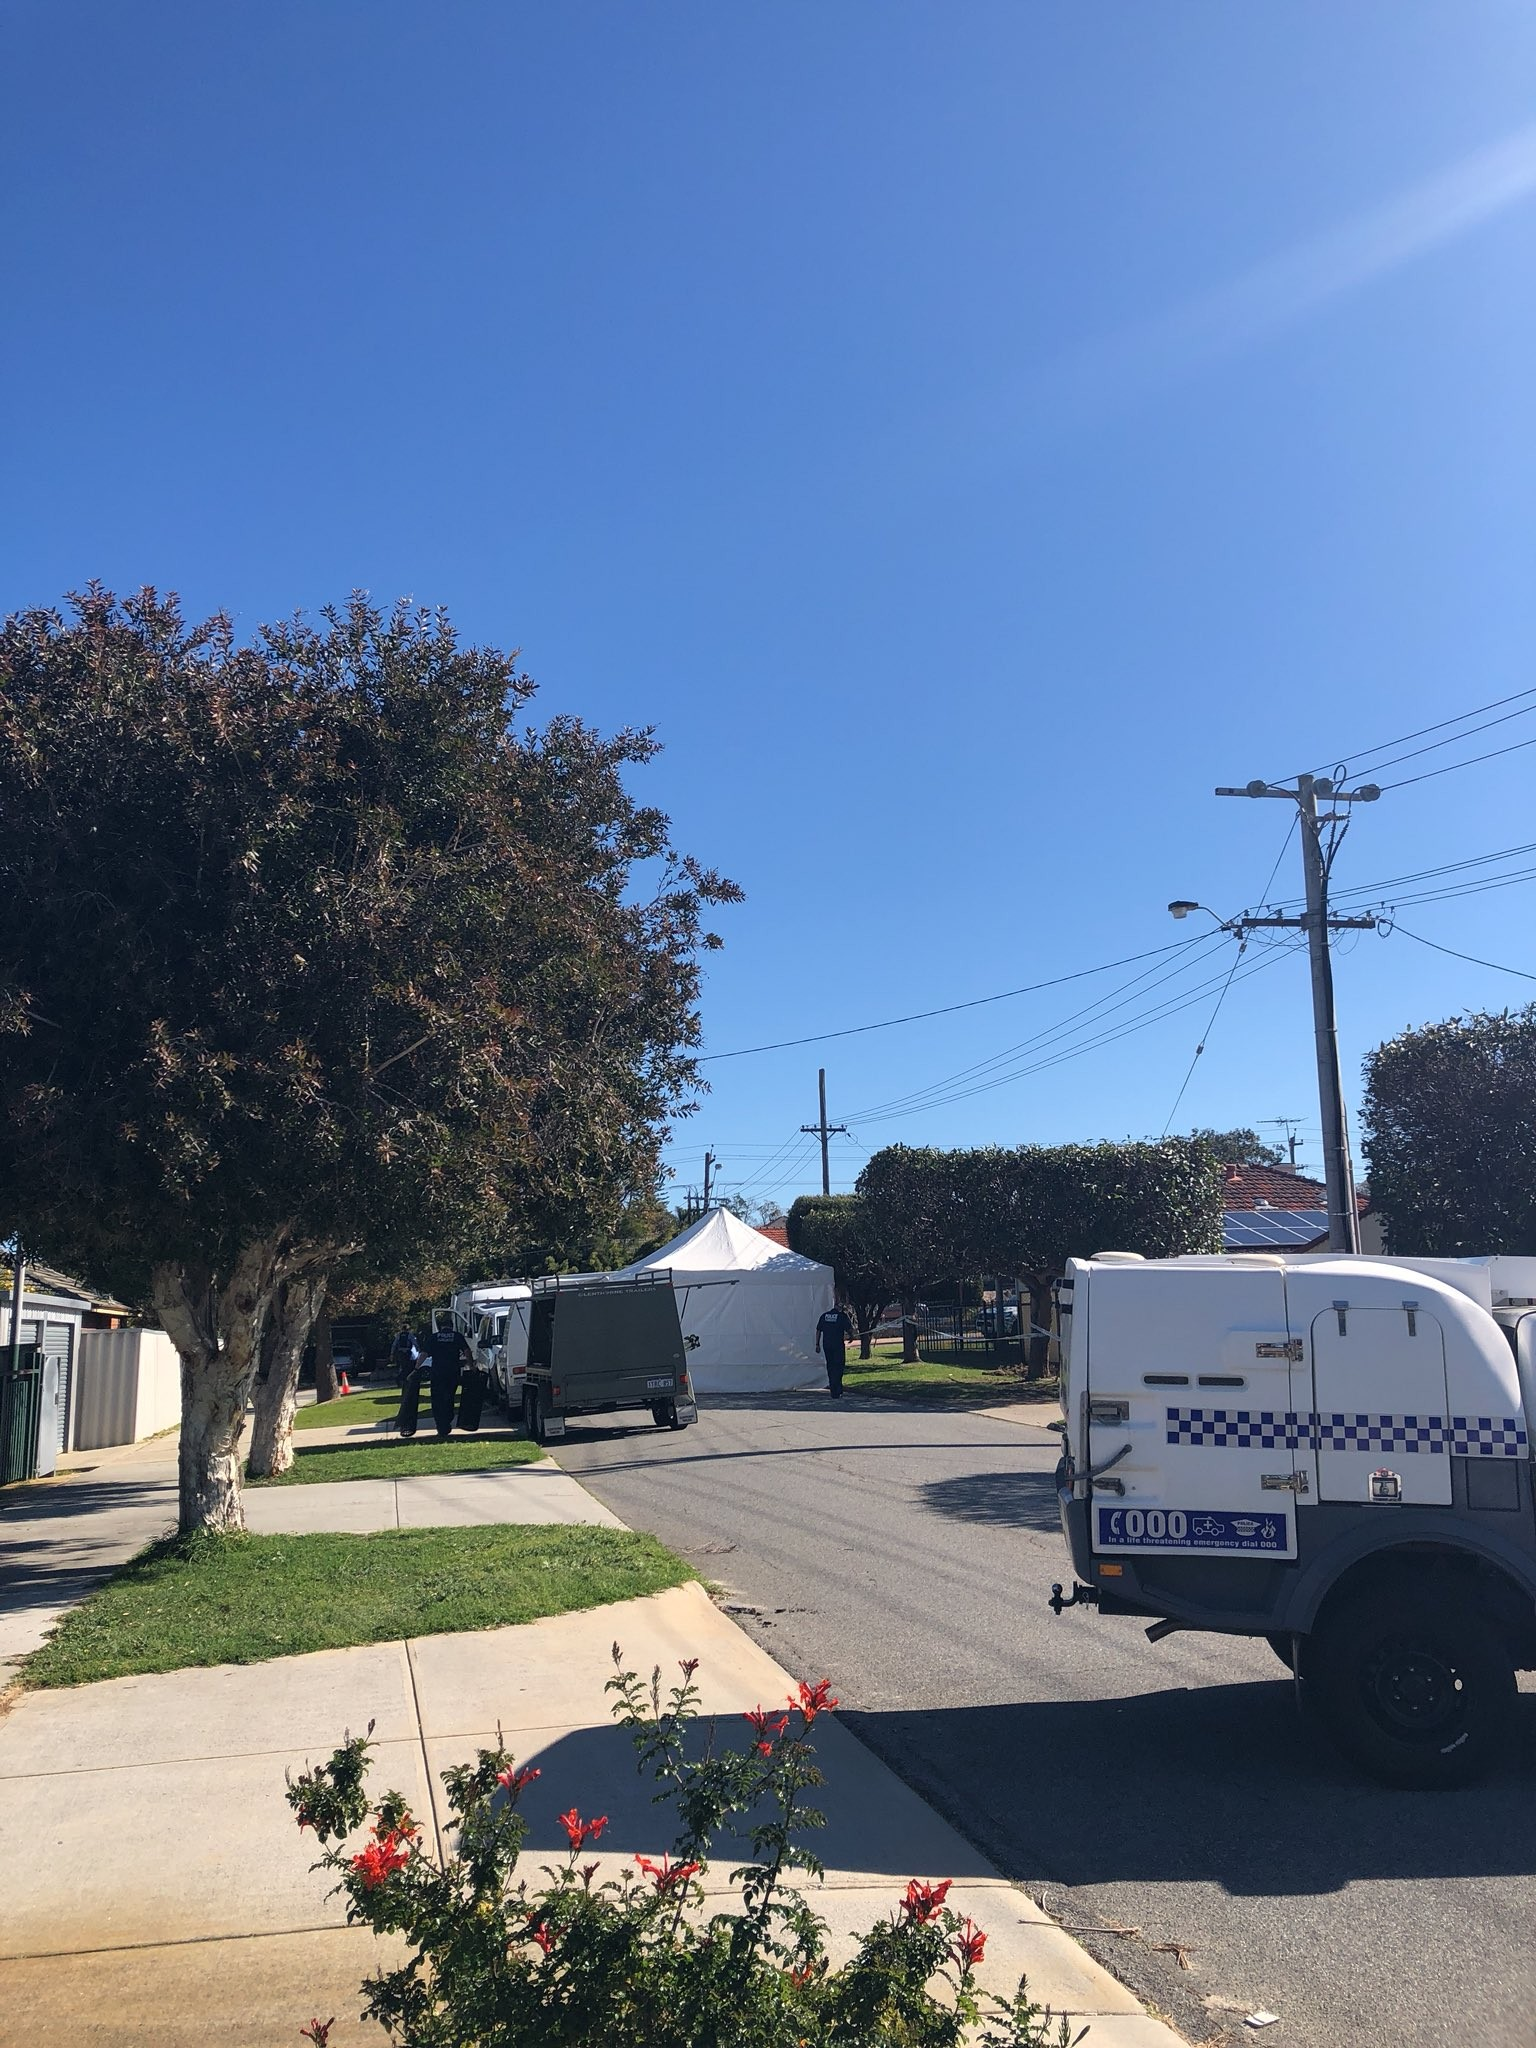 18-month old twin girls, their 3-year-old sister, mother, grandmother found dead  at a home in Australia